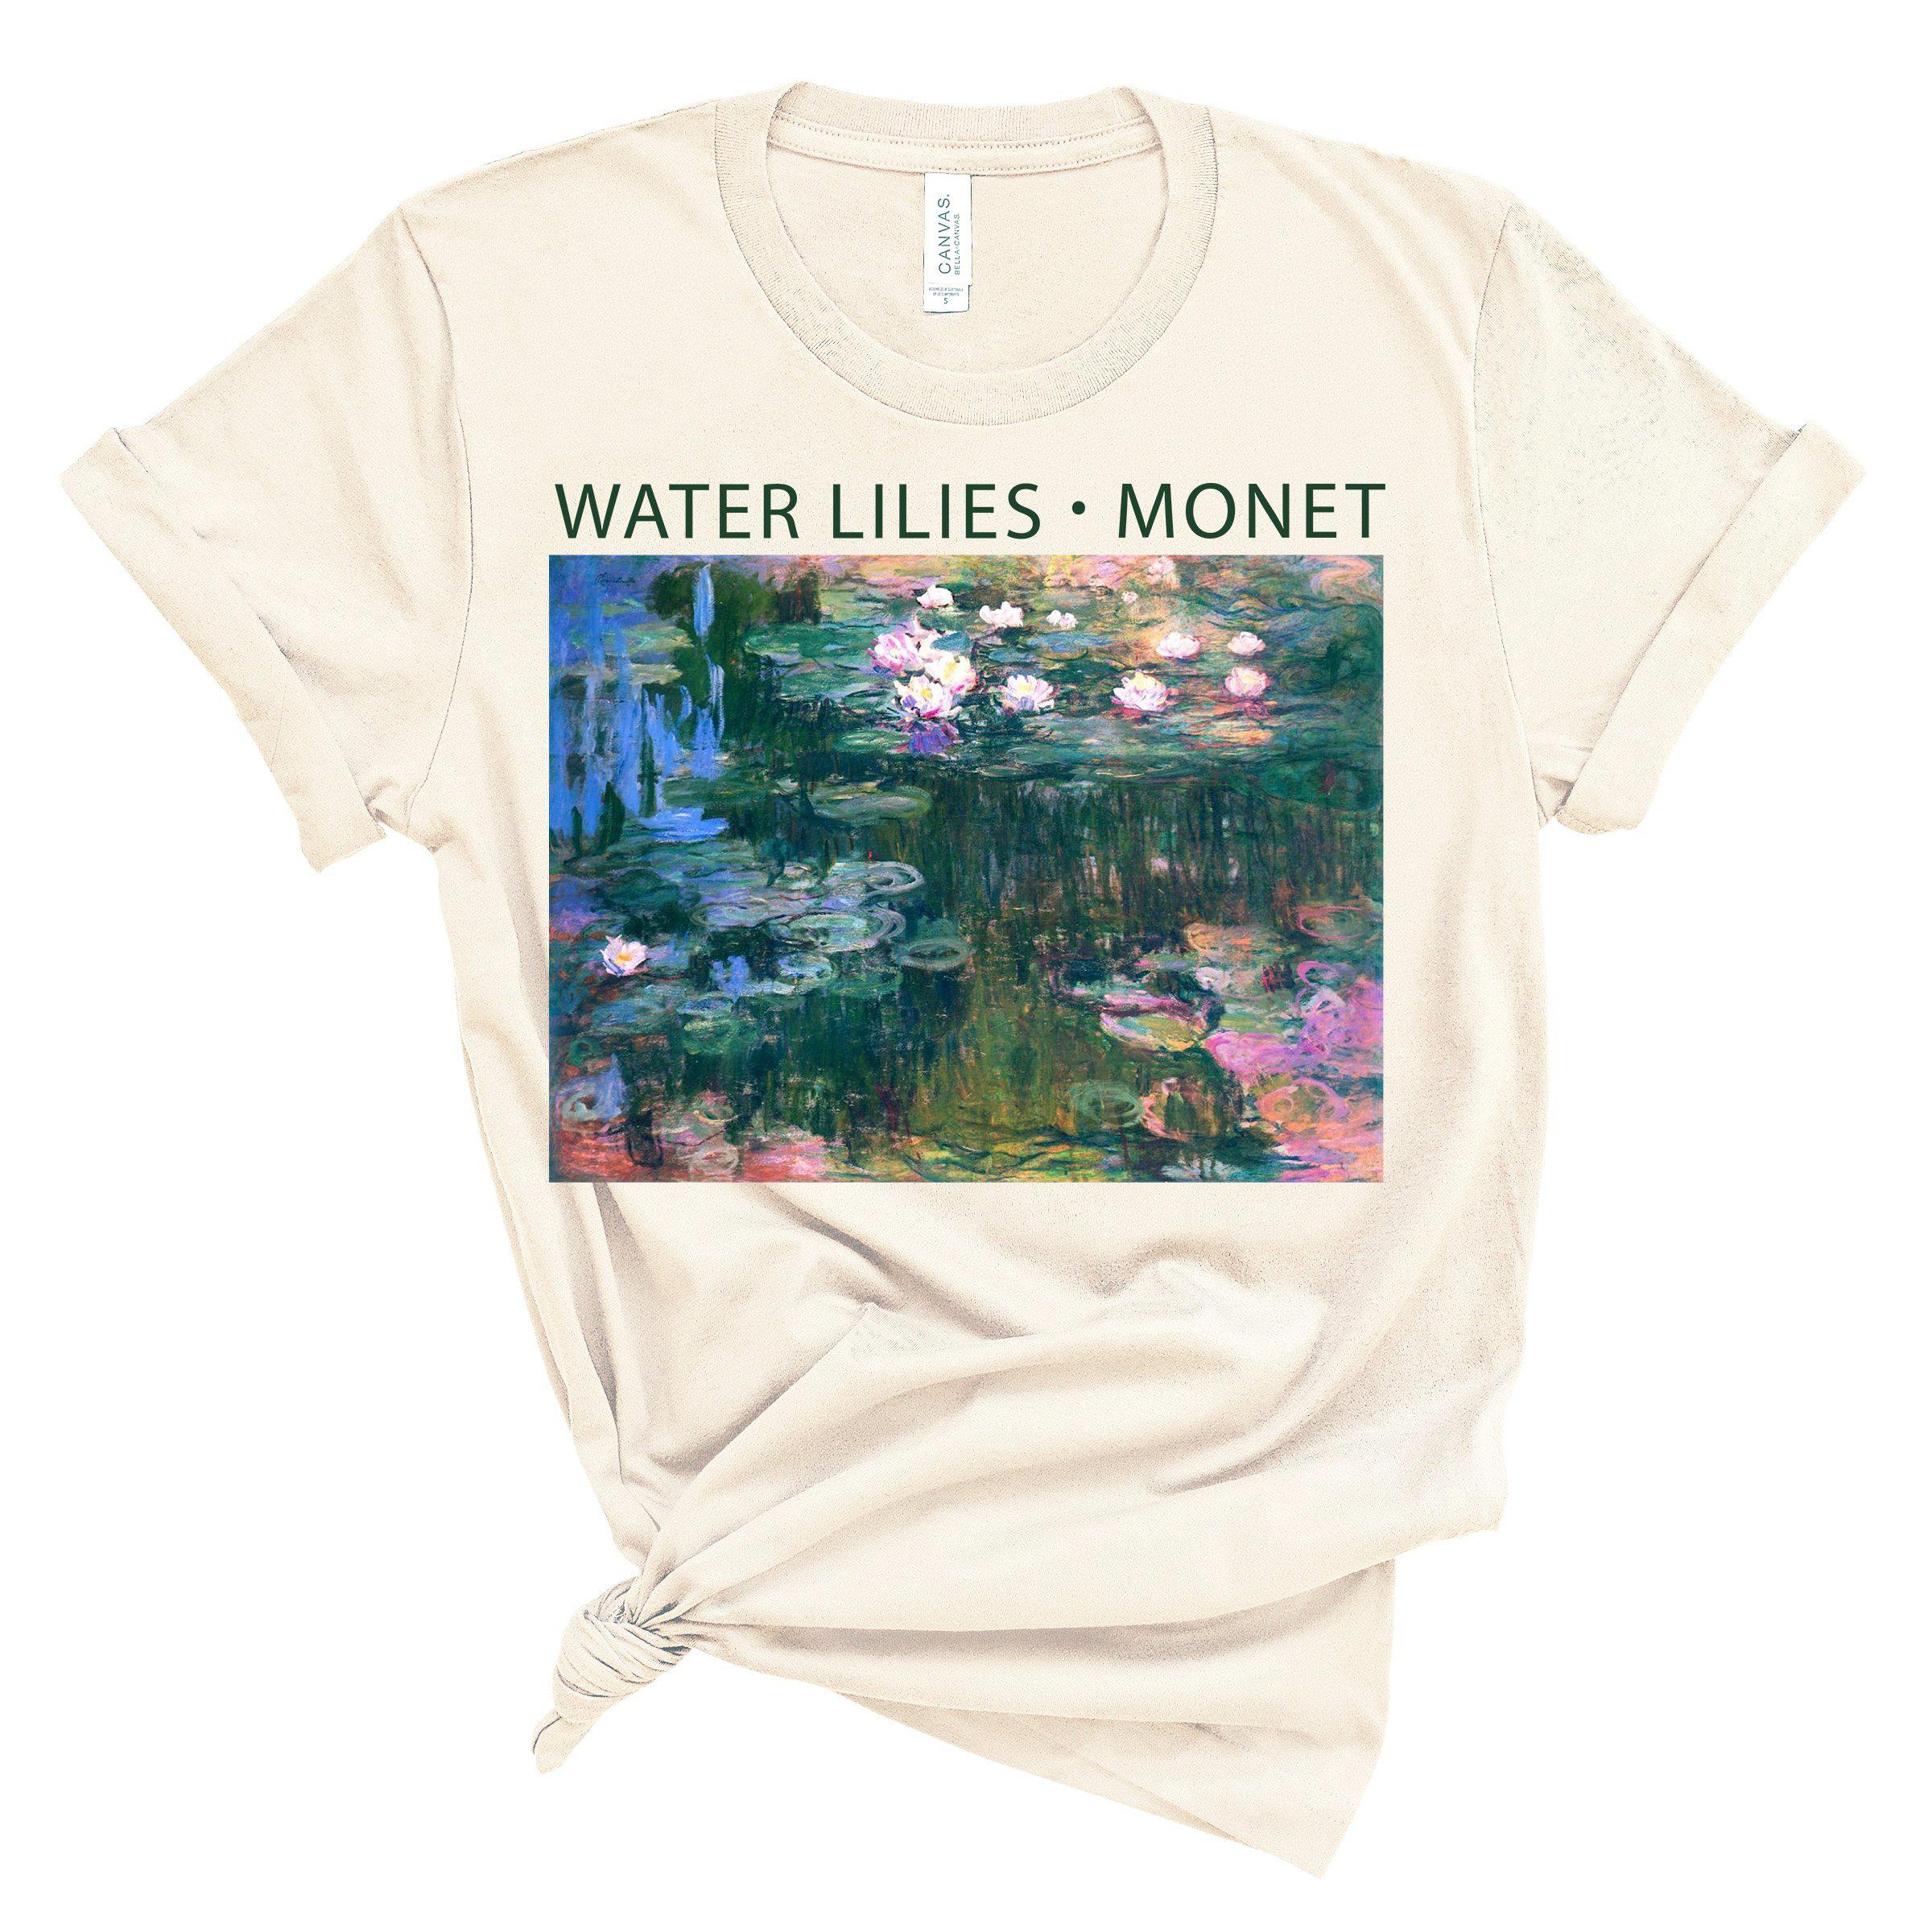 (Soft Unisex BC 3001) Water Lilies Monet Graphic T-Shirt Tee BOXELS